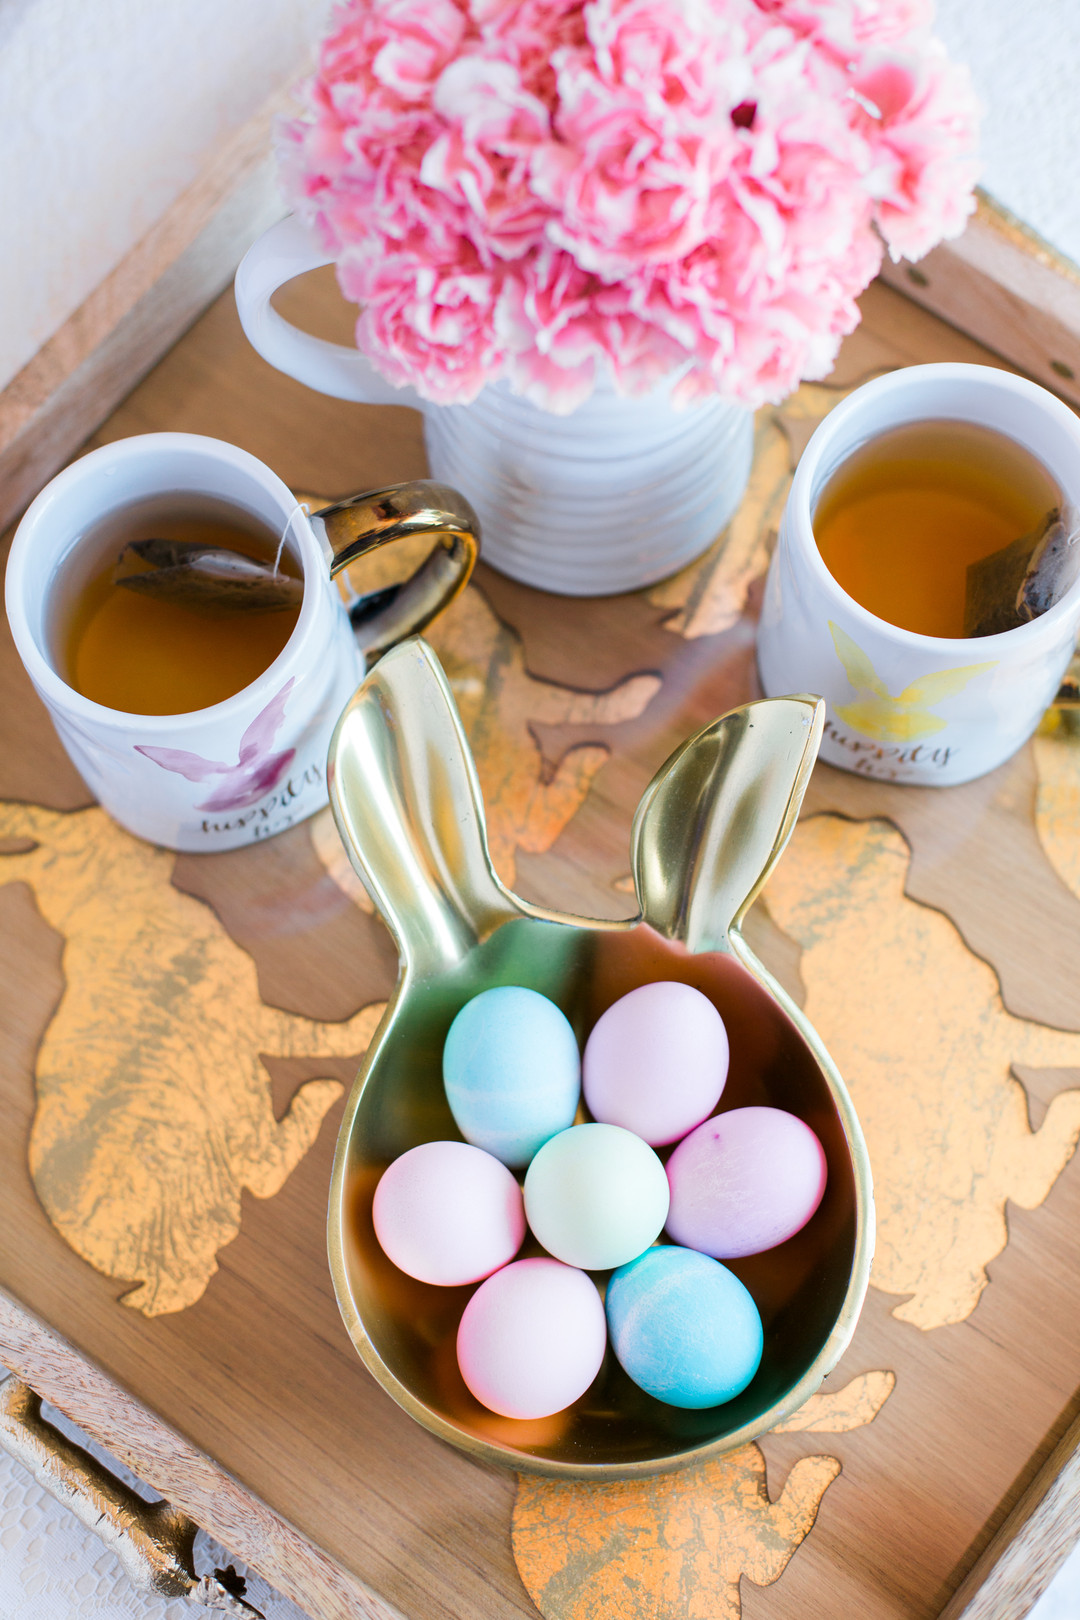 Staal_KristinaStaalPhotography_KristinaStaalPhotographyEasterTablescape201643_big Easy Entertaining: Easter Brunch Inspiration for Two